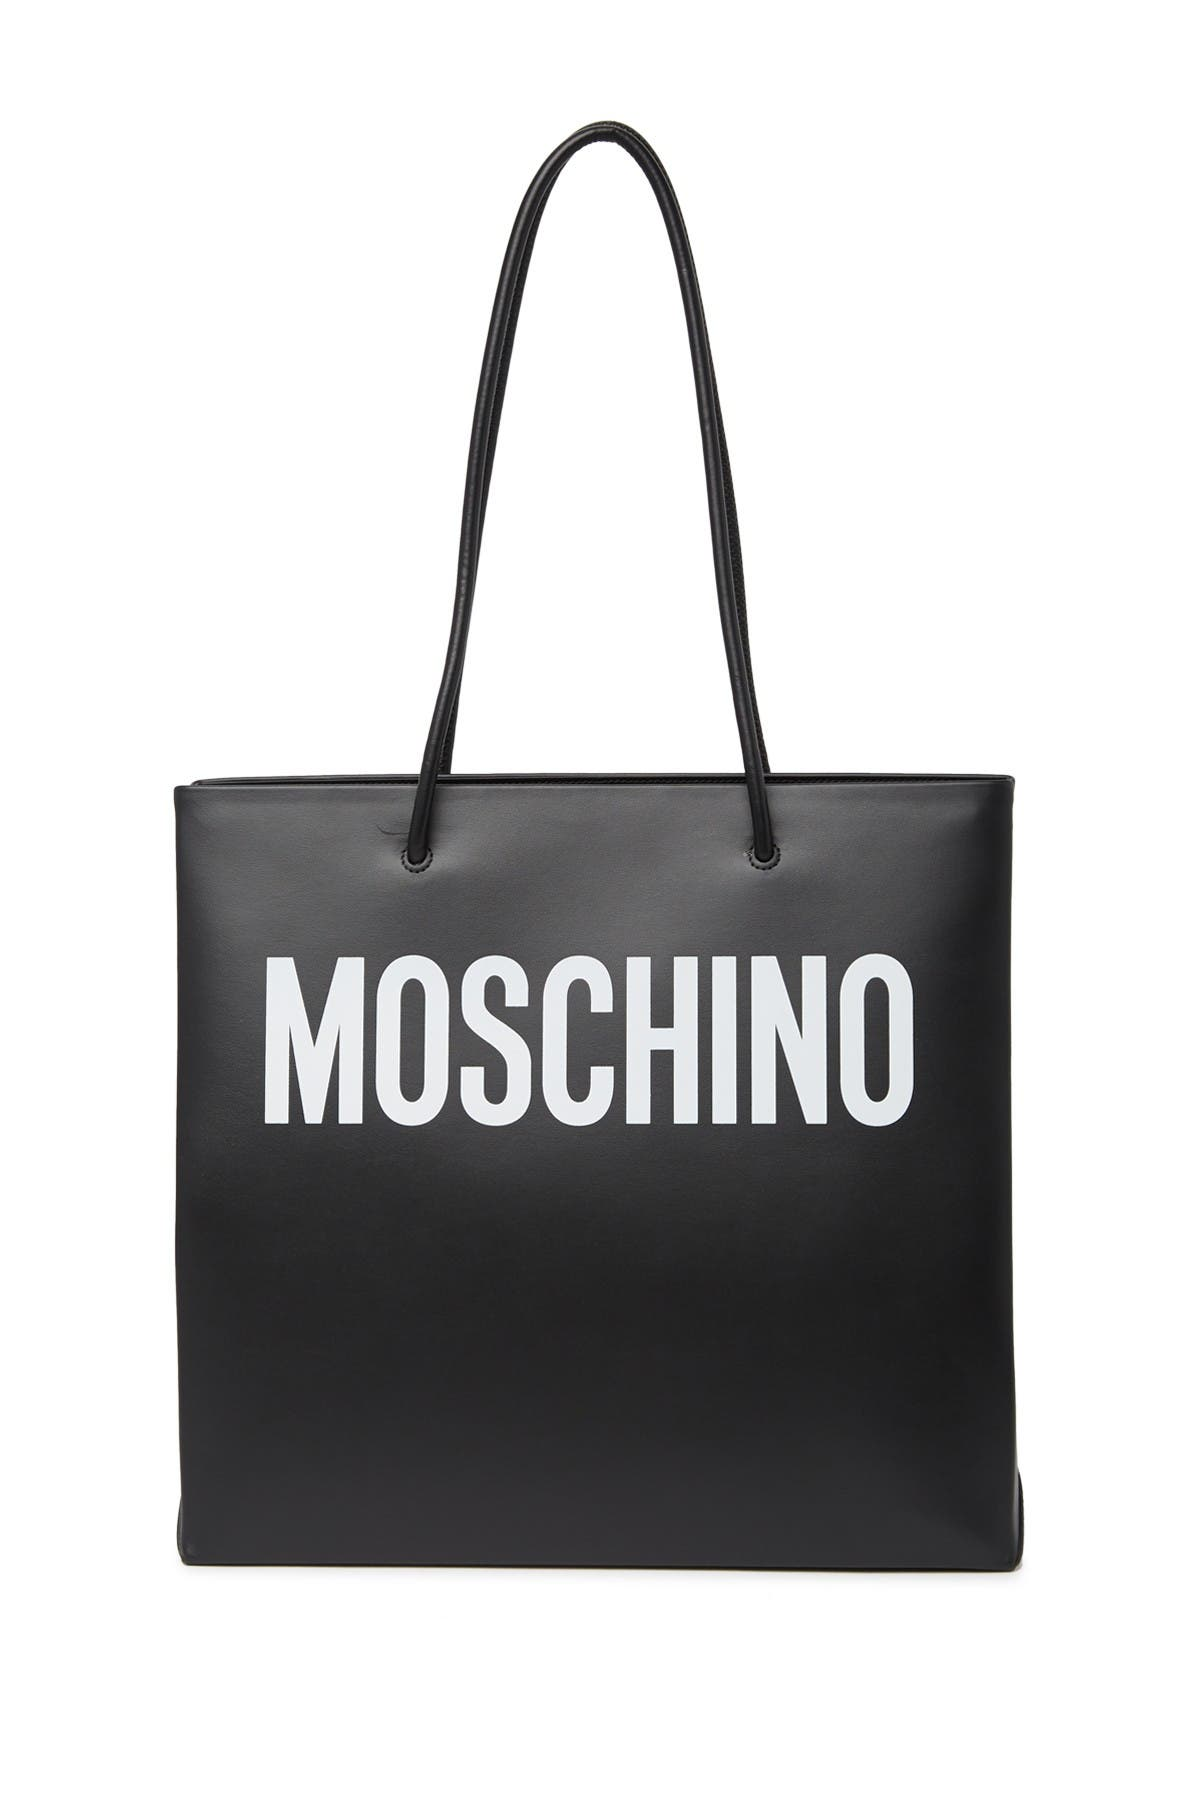 Image of MOSCHINO Two-Tone Logo Tote Bag